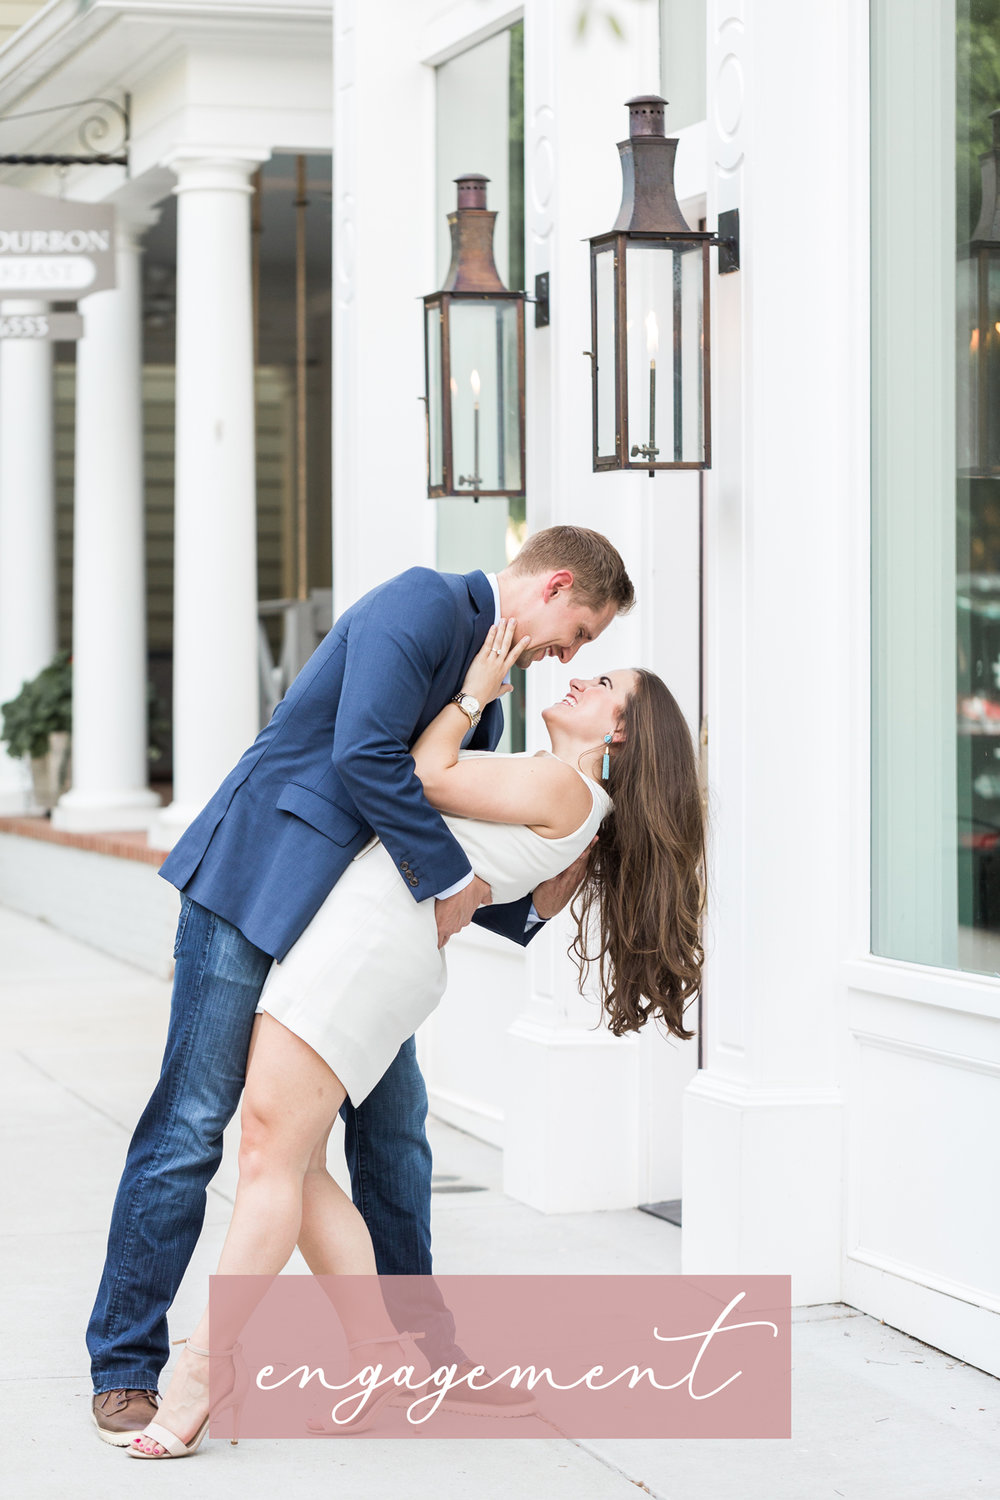 engagement-louisville-wedding-photographer-the-belles-photography.jpg